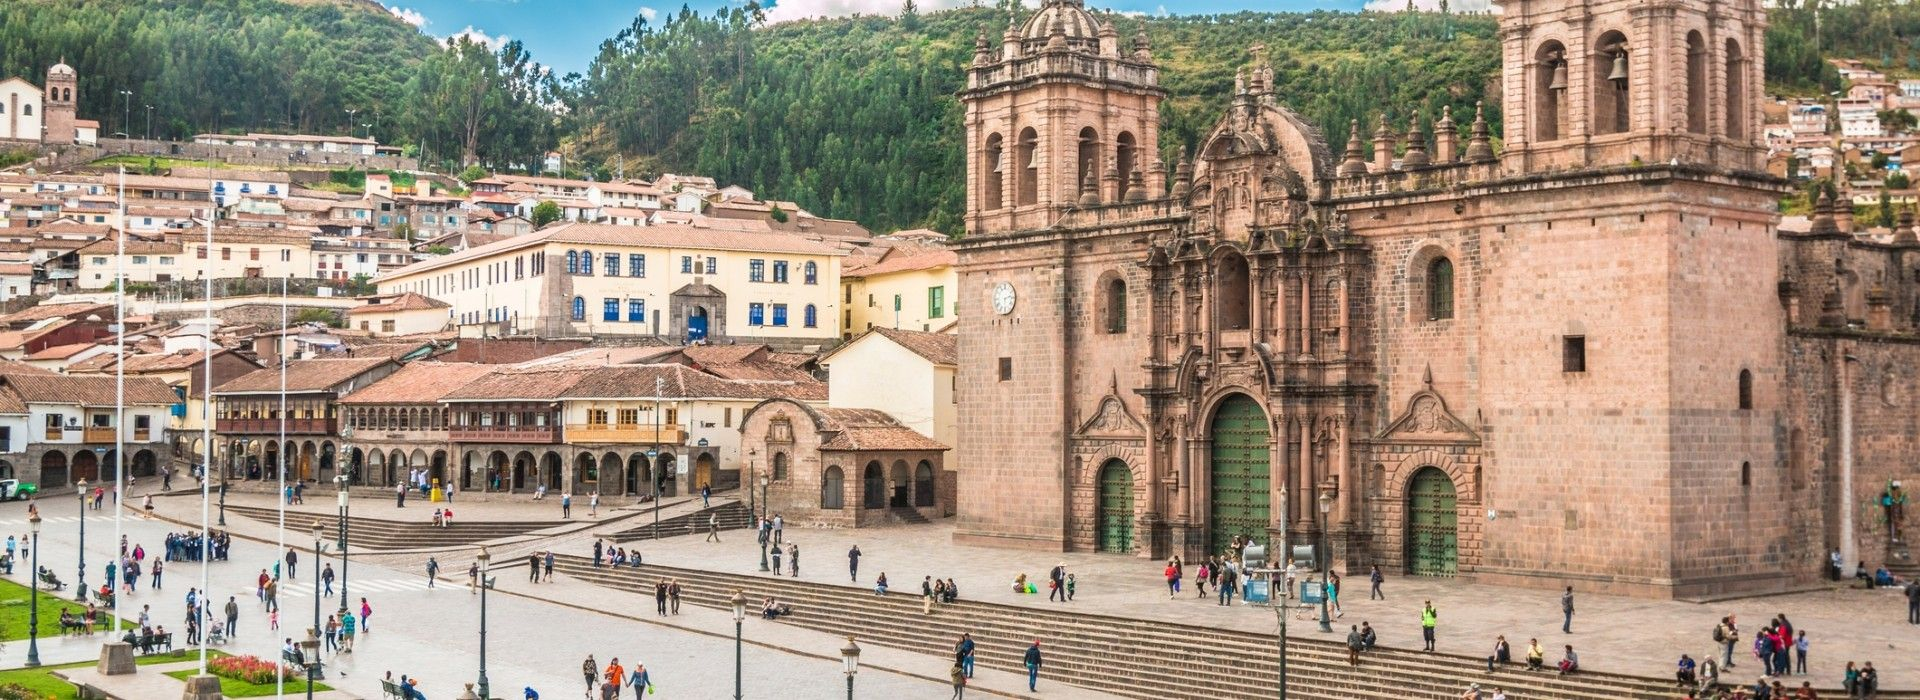 Tours in Cusco will transport you back to ancient Inca Empire